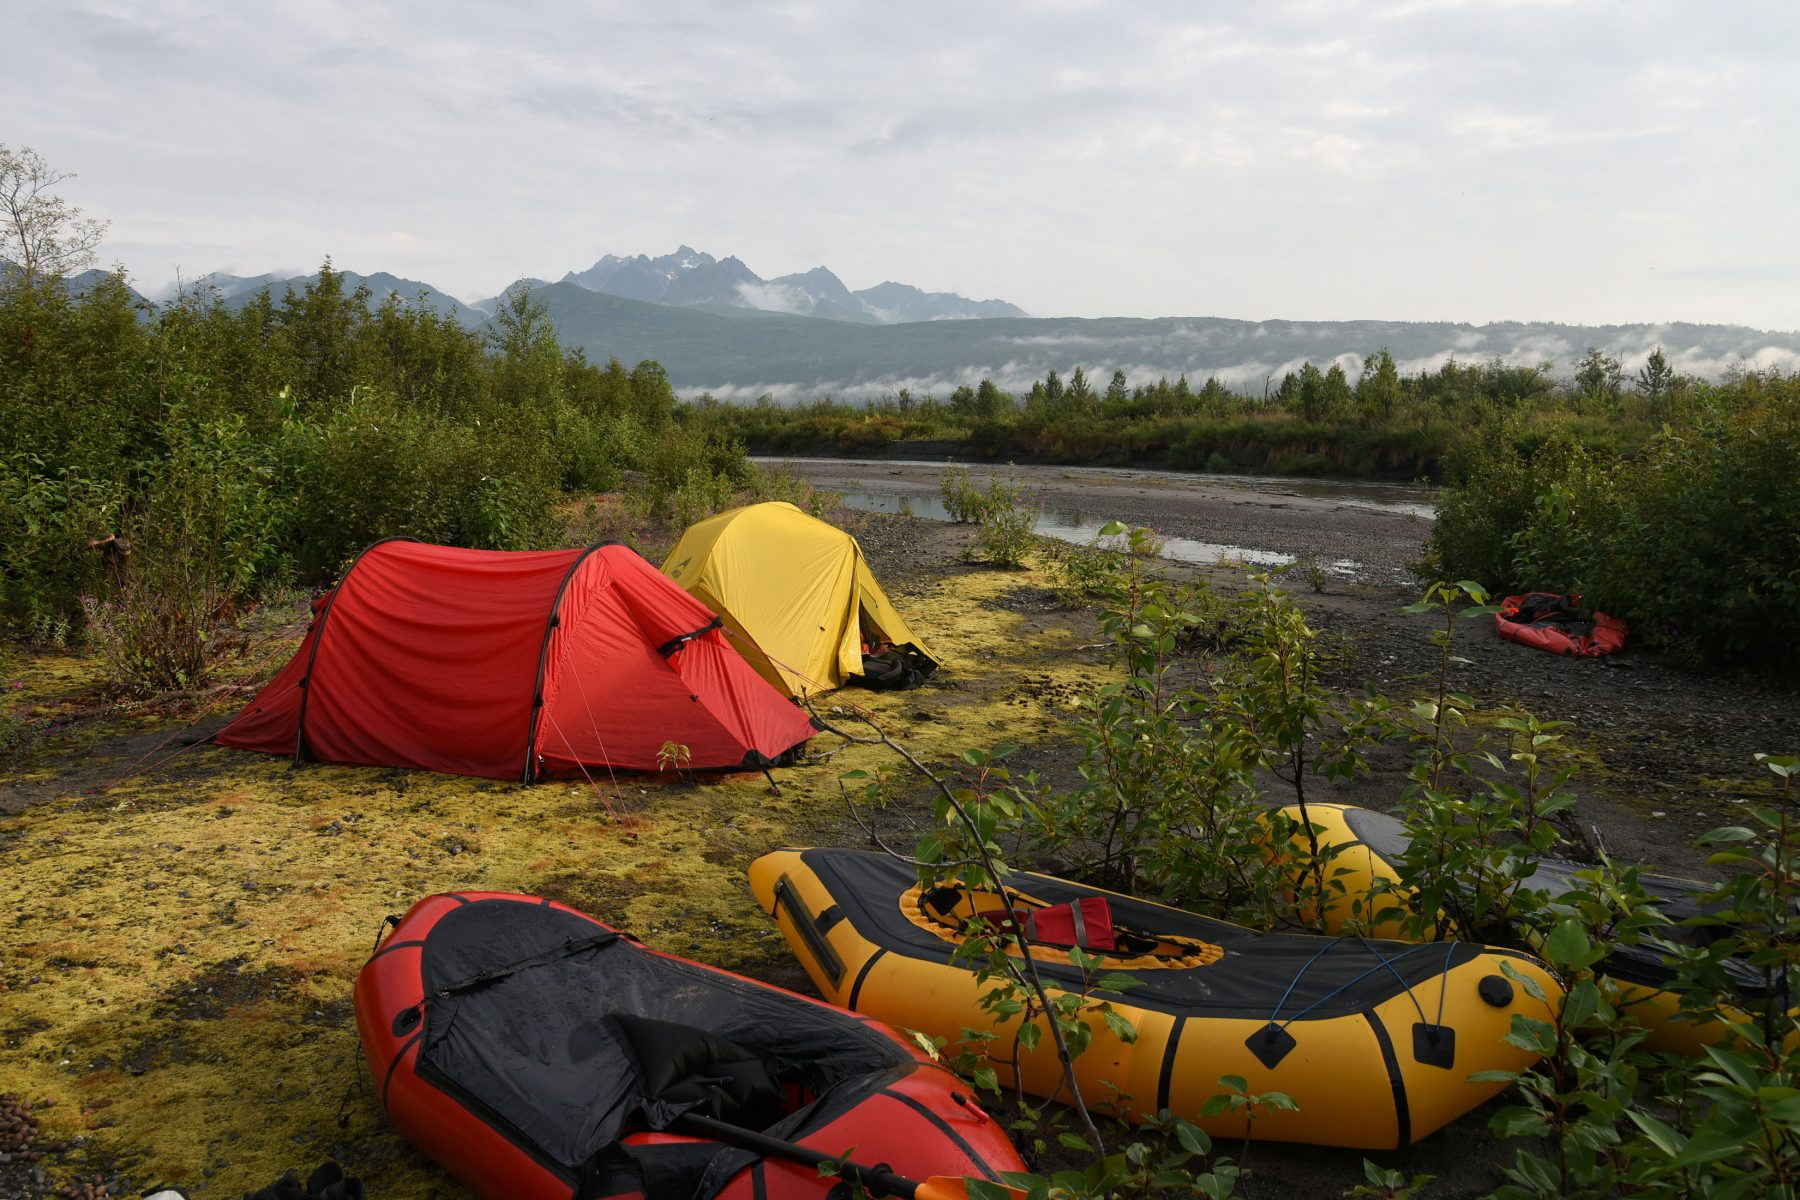 Campsite on the Tokositna River